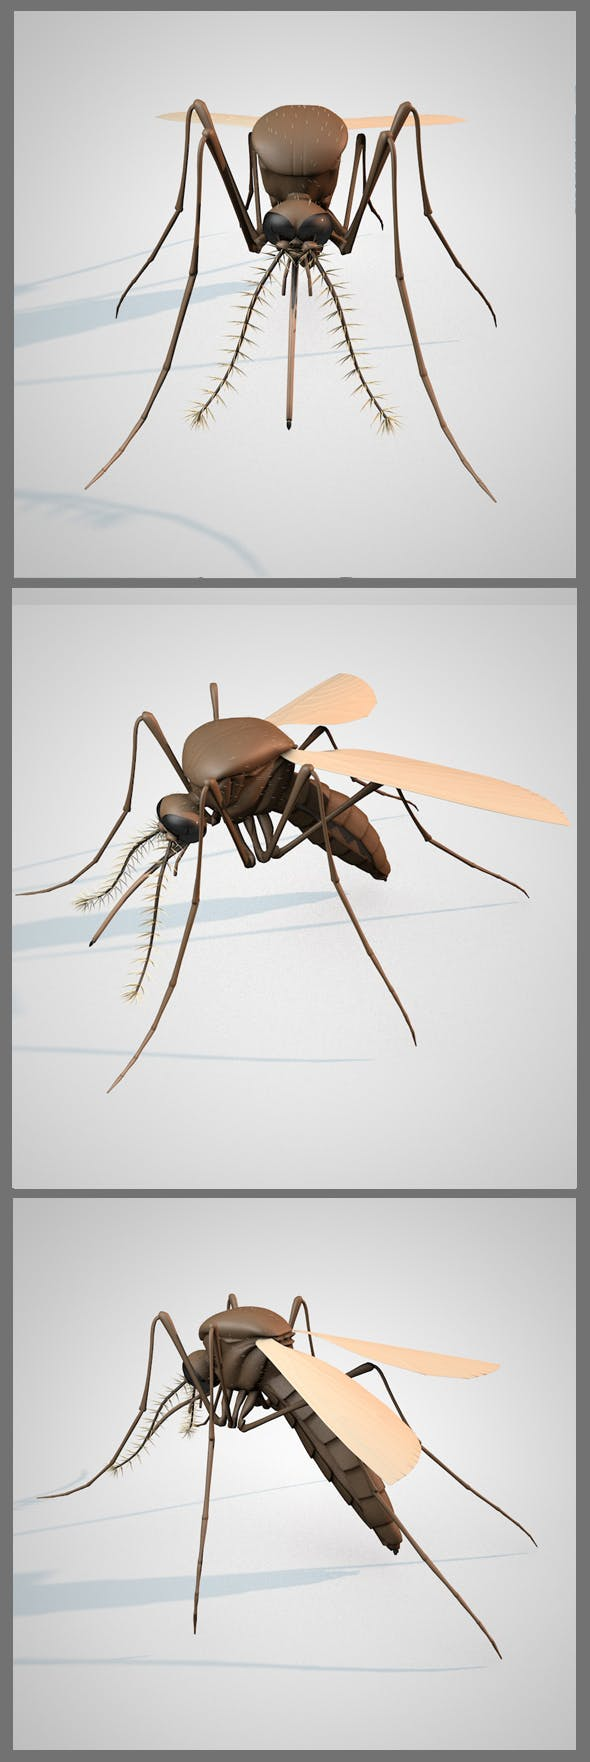 Mosquito - 3DOcean Item for Sale